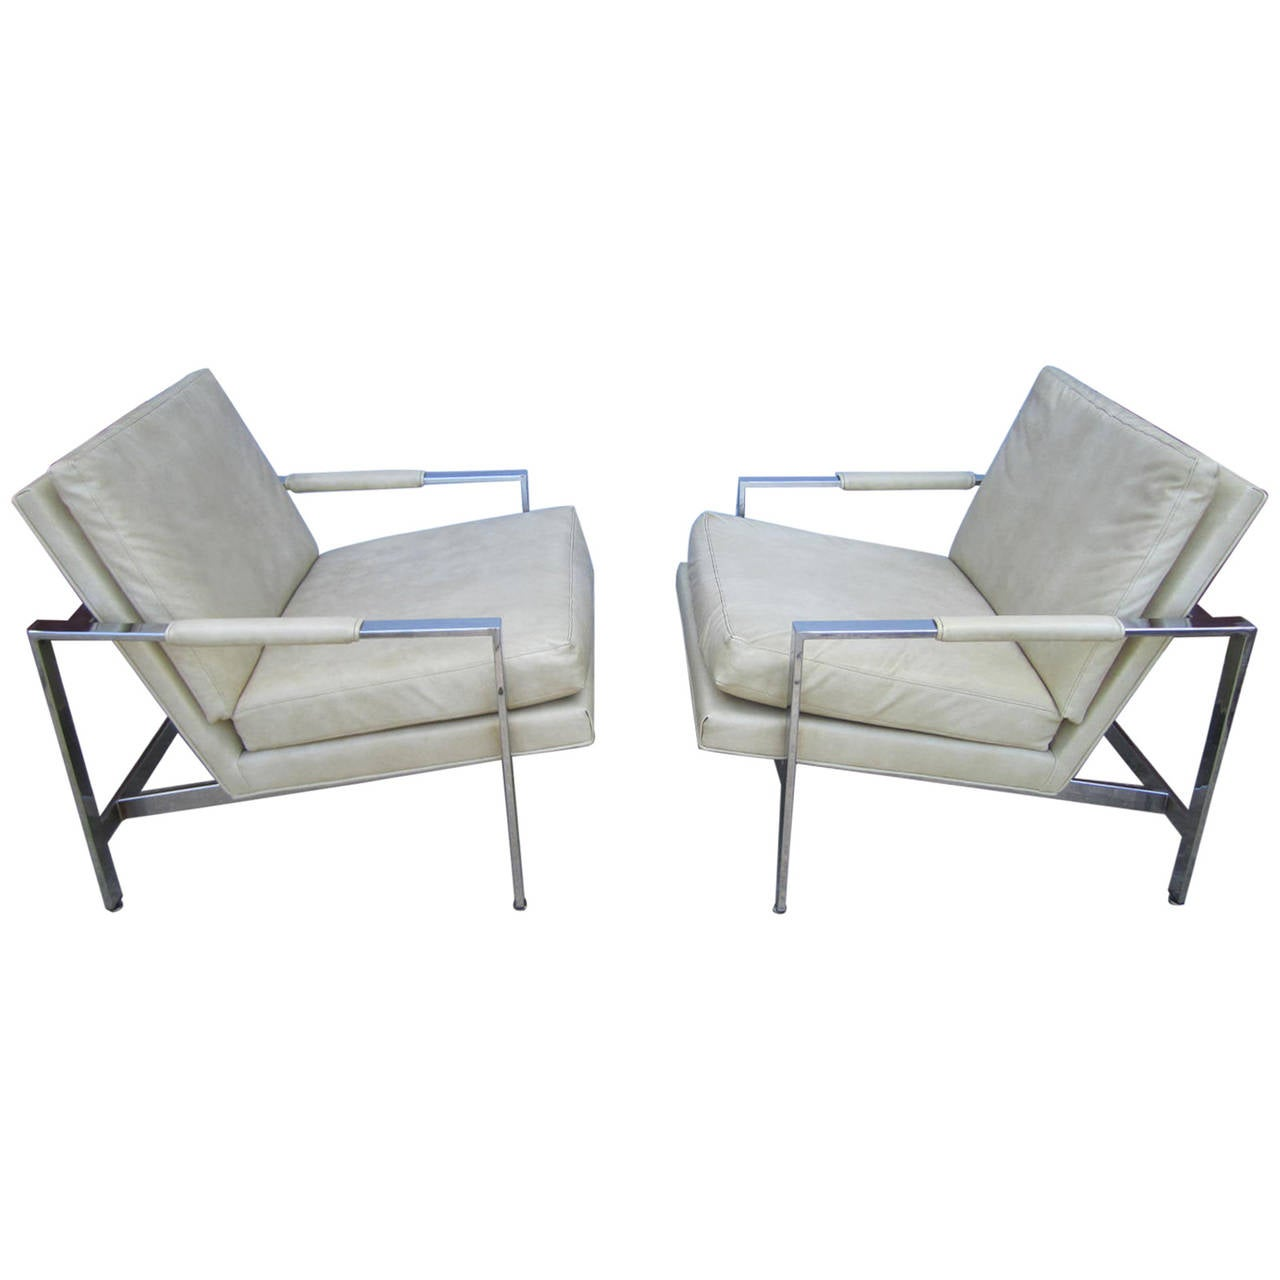 Amazing Lovely Pair Of Milo Baughman Chrome Cube Chairs Mid Century Modern Machost Co Dining Chair Design Ideas Machostcouk